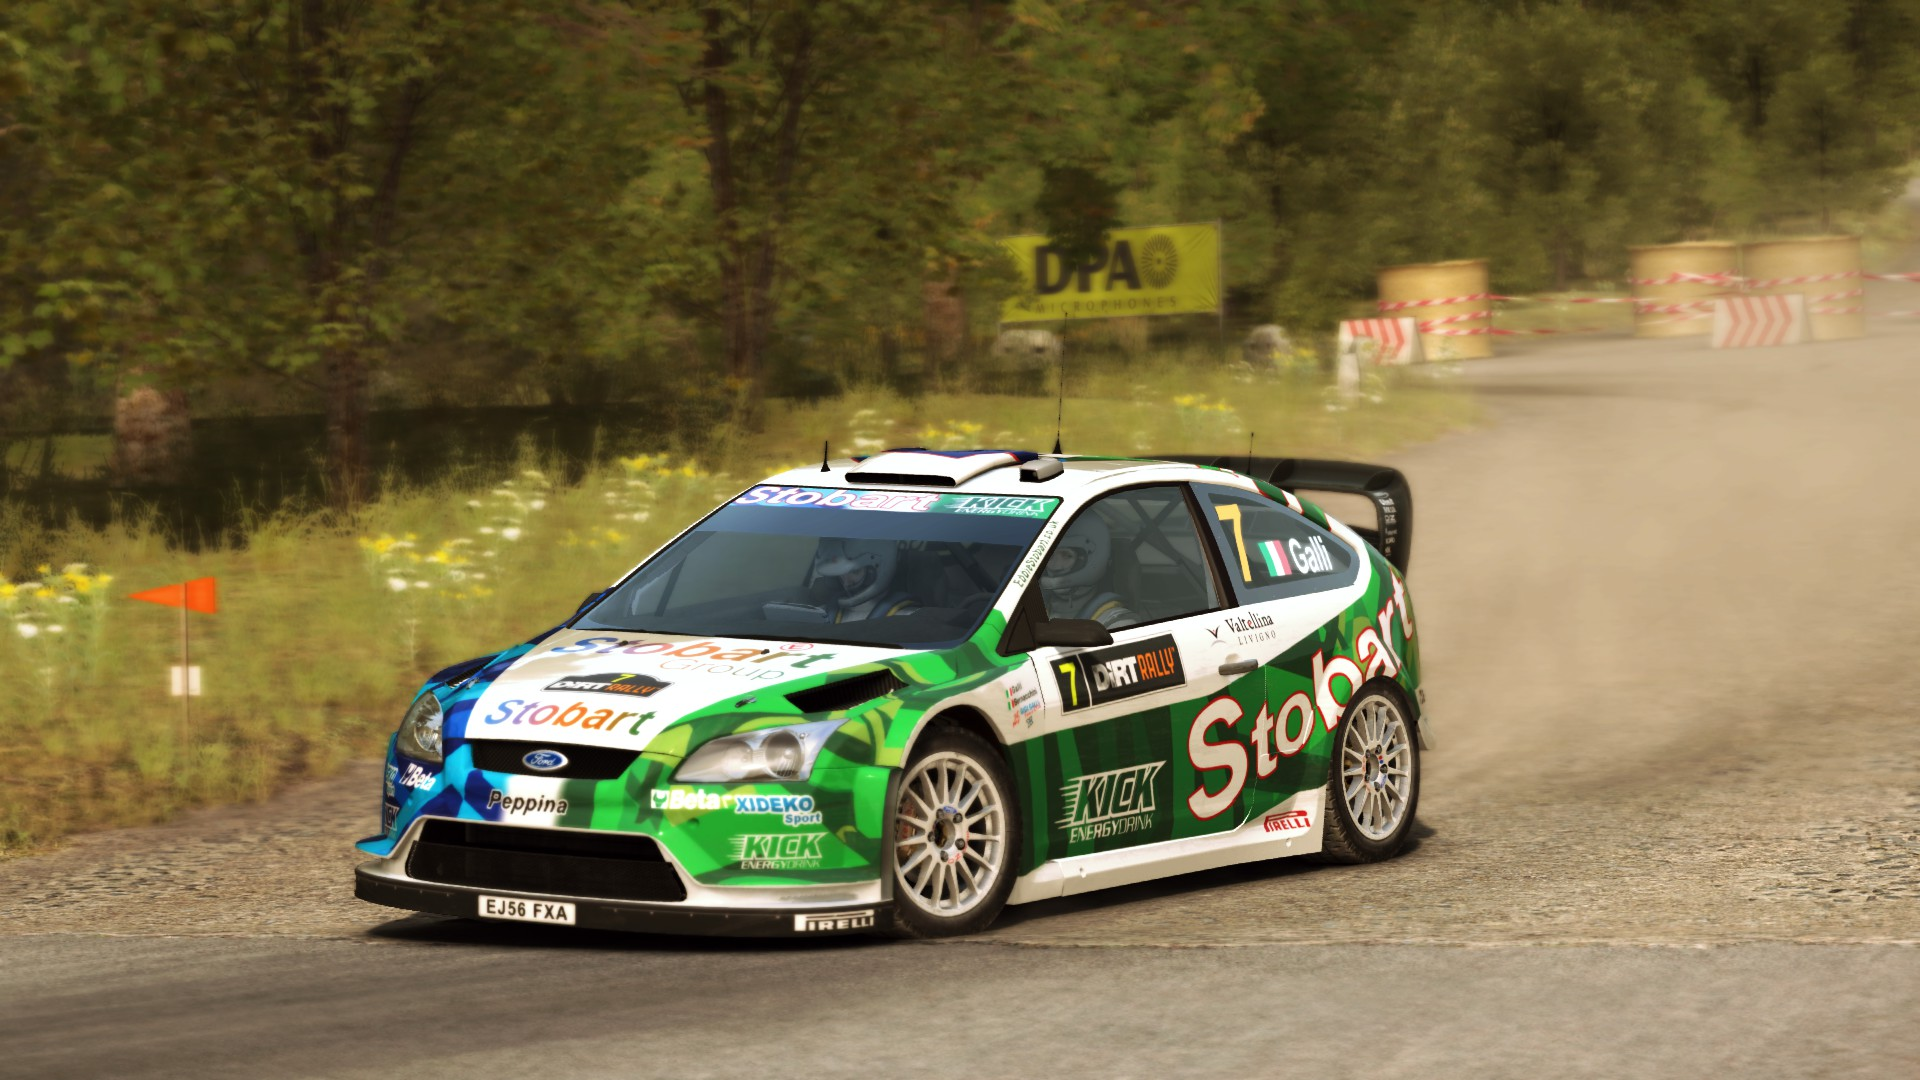 Steam Community :: Guide :: Dirt Rally Liveries: 2000 - 2010